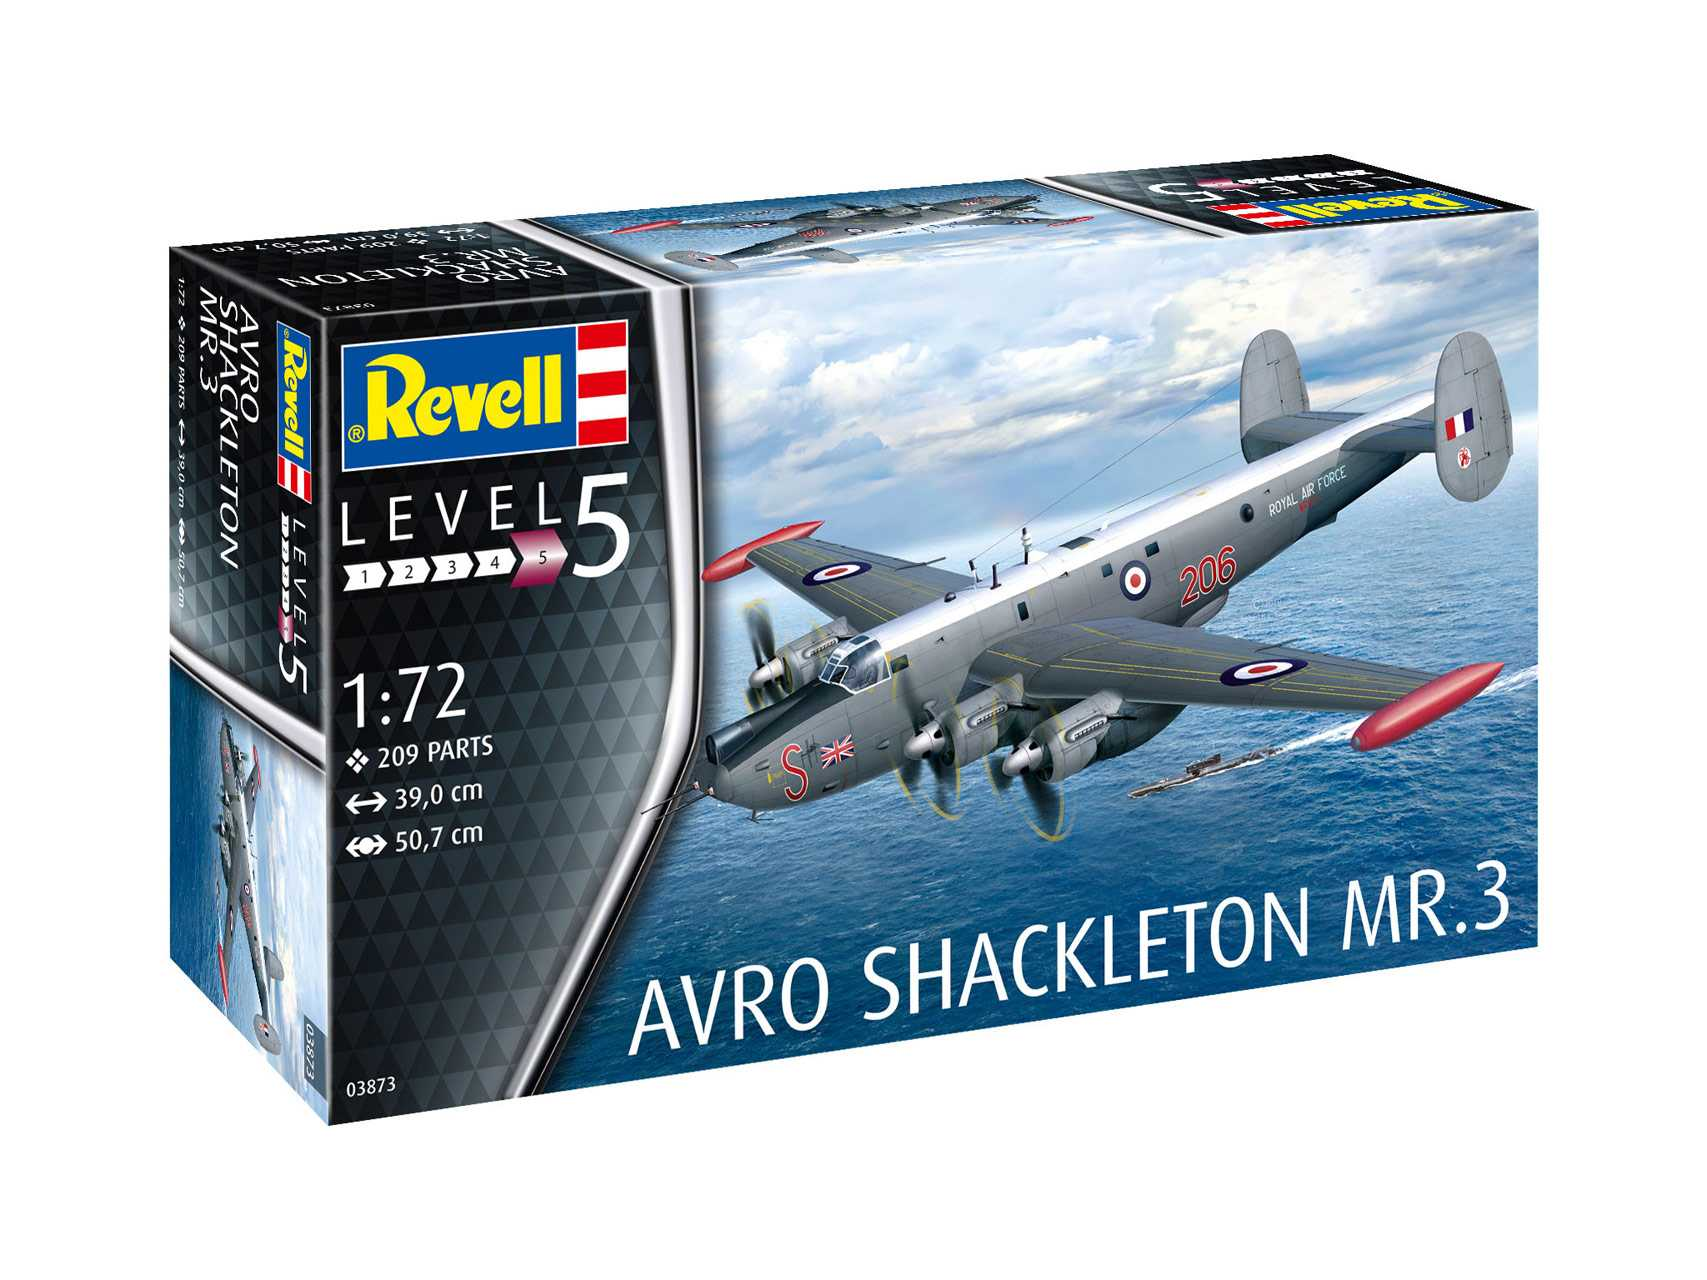 Náhľad produktu - 1:72 Avro Shackleton MR.3